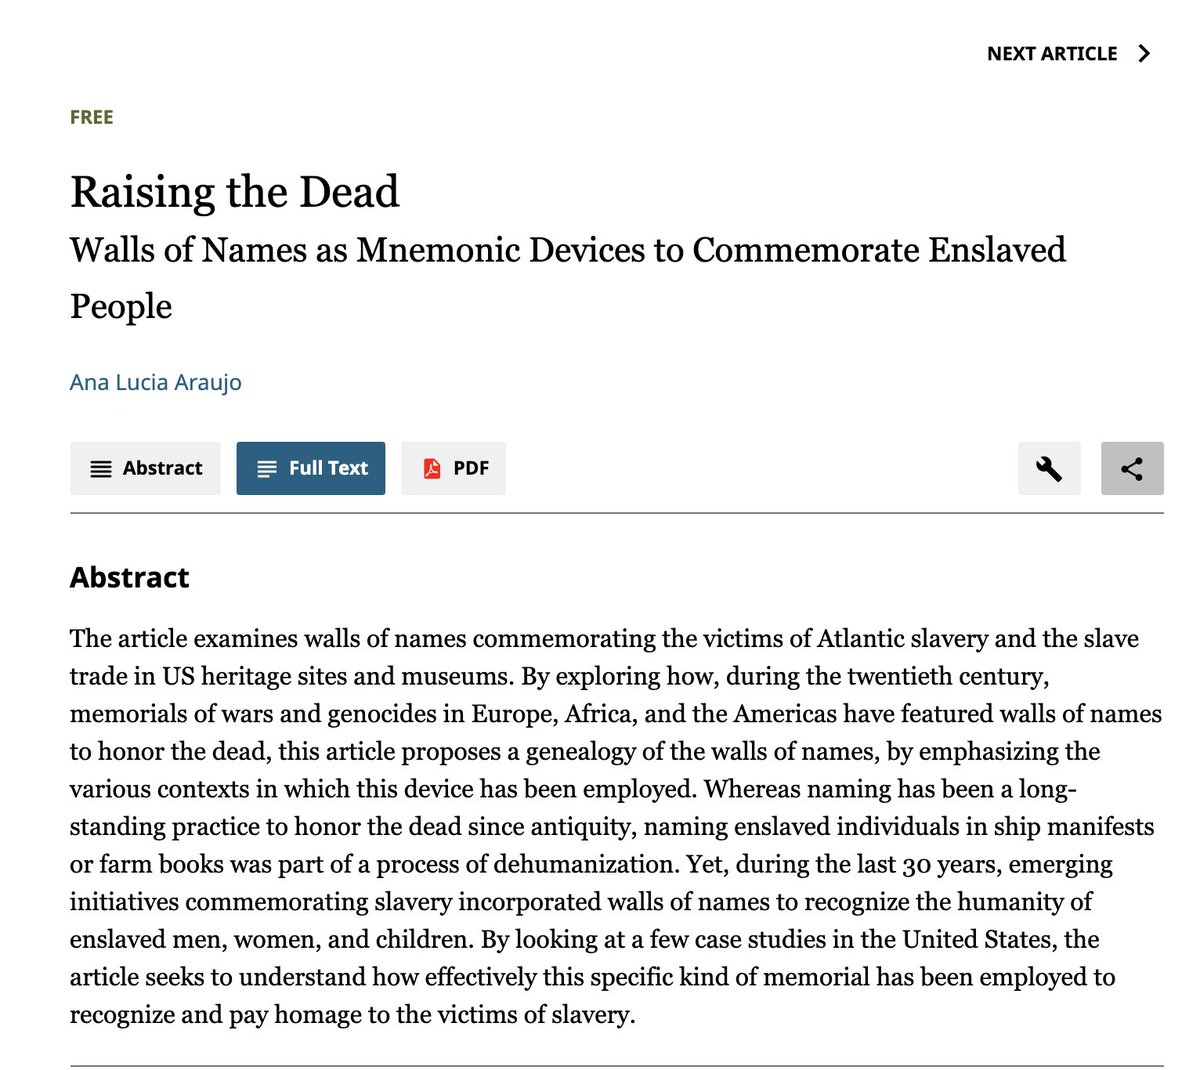 """#Twitterstorians check and share my article """"Raising the Dead: Walls of Names as Mnemonic Devices to Commemorate Enslaved People"""" published (ahead of print) in Current Anthropology, free access forever! #slaveryarchive https://t.co/EZzU0YZOVA https://t.co/7CkvOBZdln"""